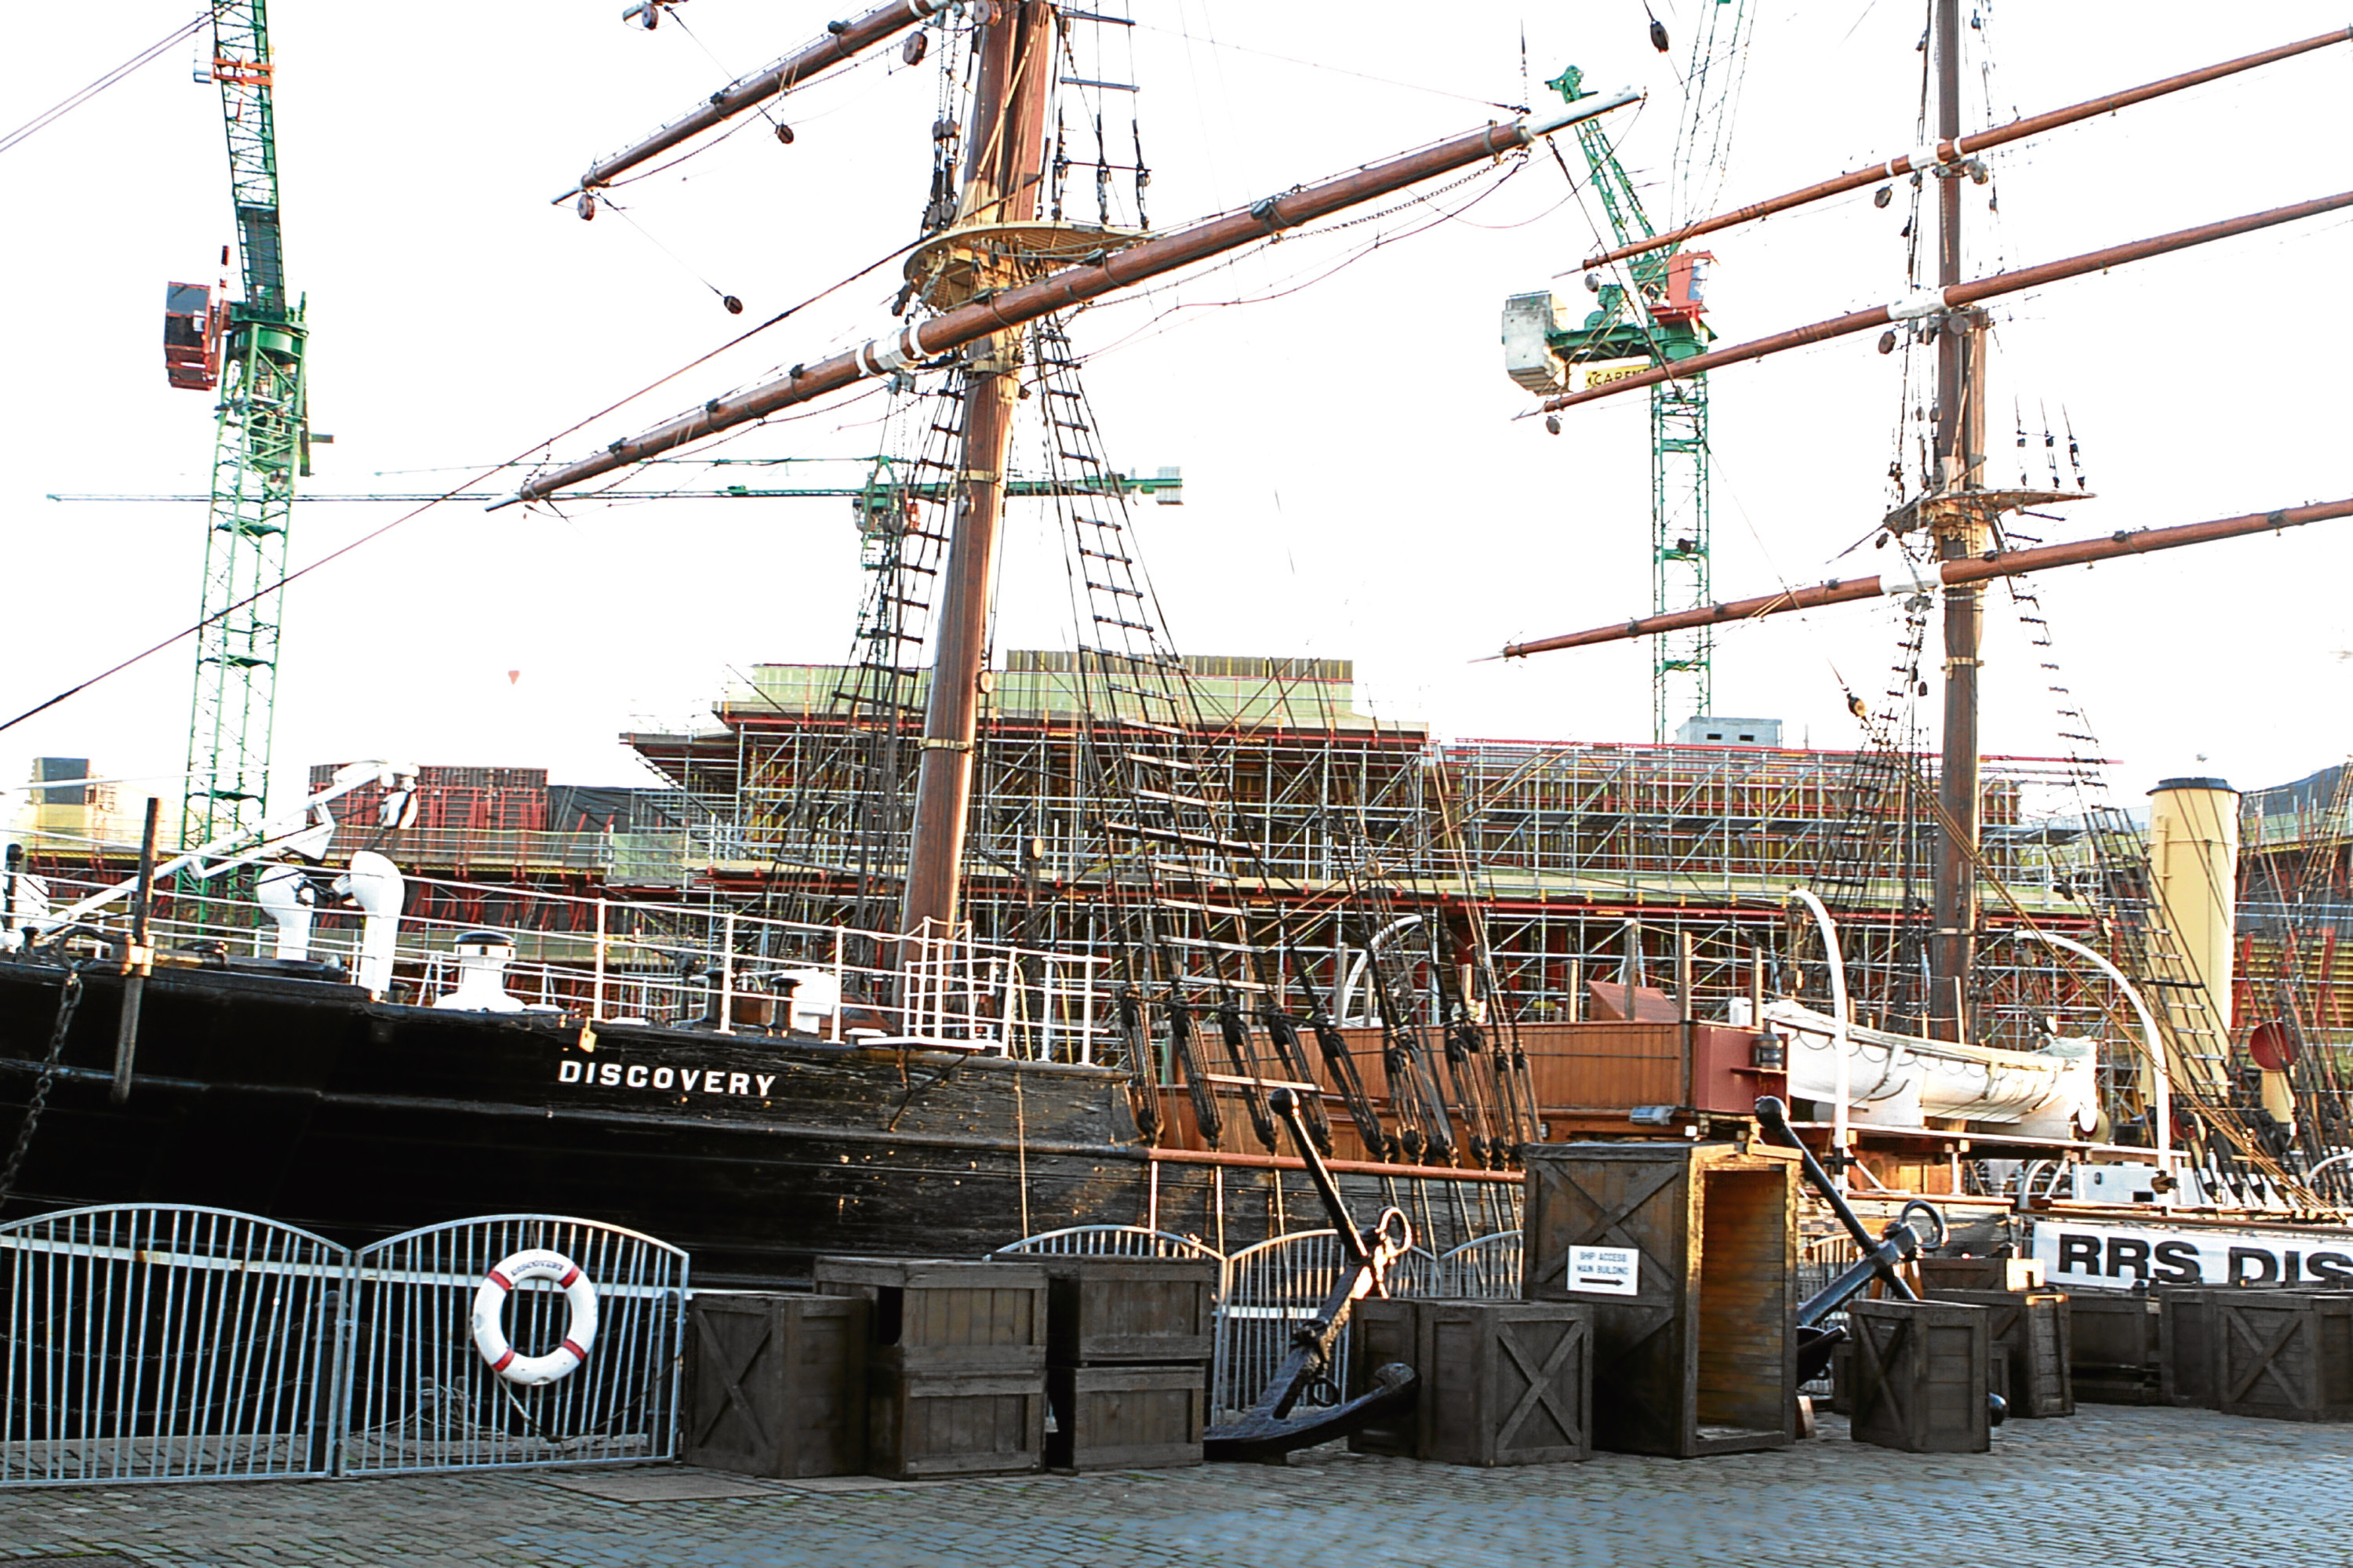 The RRS Discovery in Dundee is undergoing vital restoration works to reinstate masts and rigging in accordance with the ship's original design.